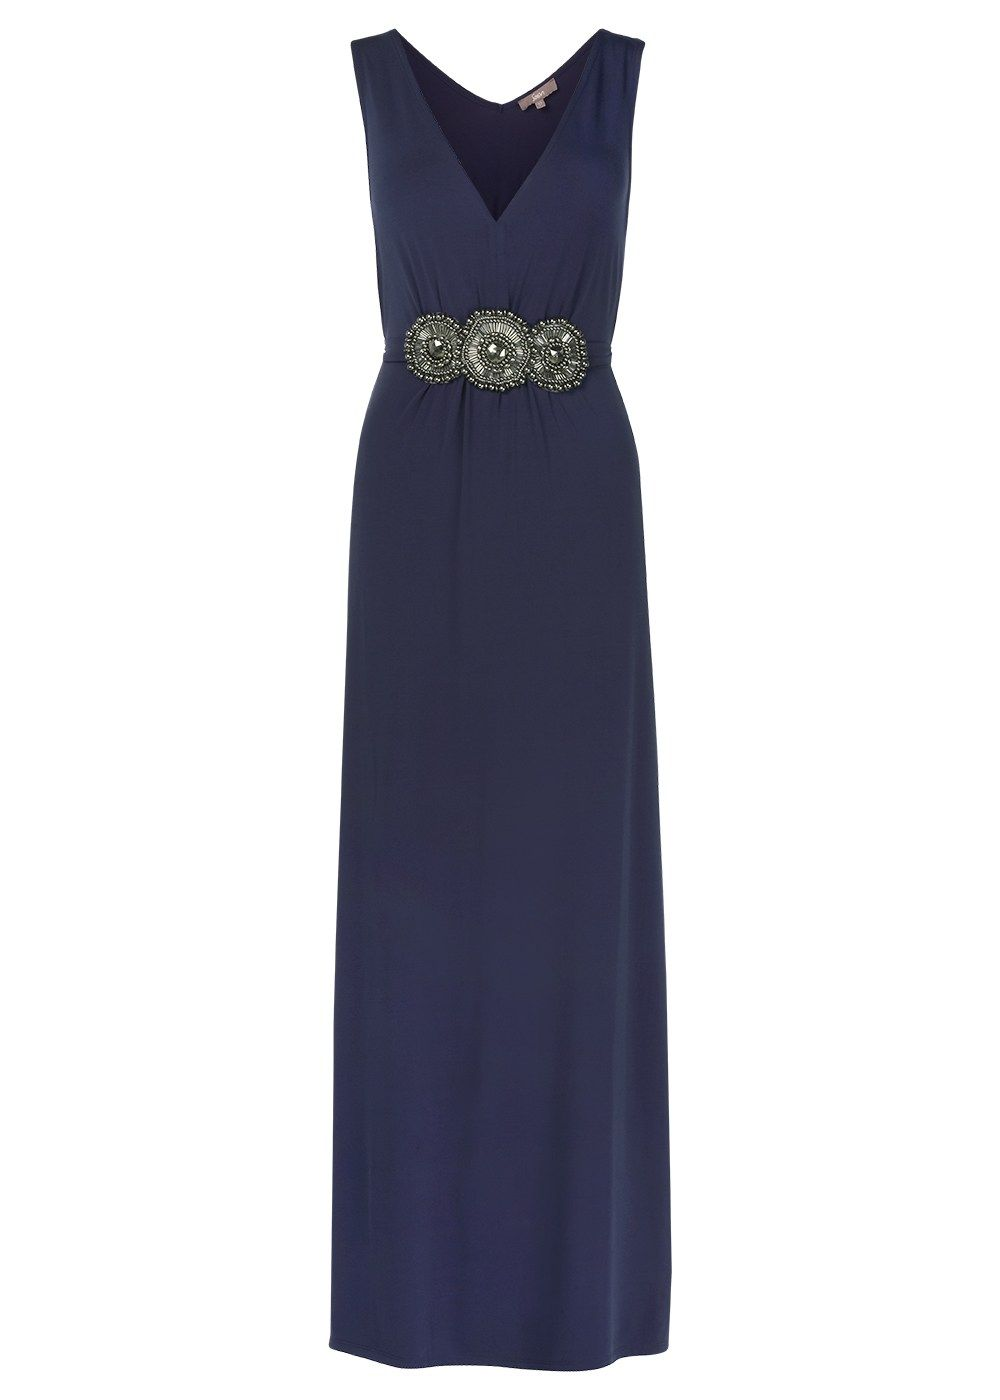 Sleeveless navy blue maxi dress features a vneckline and has been